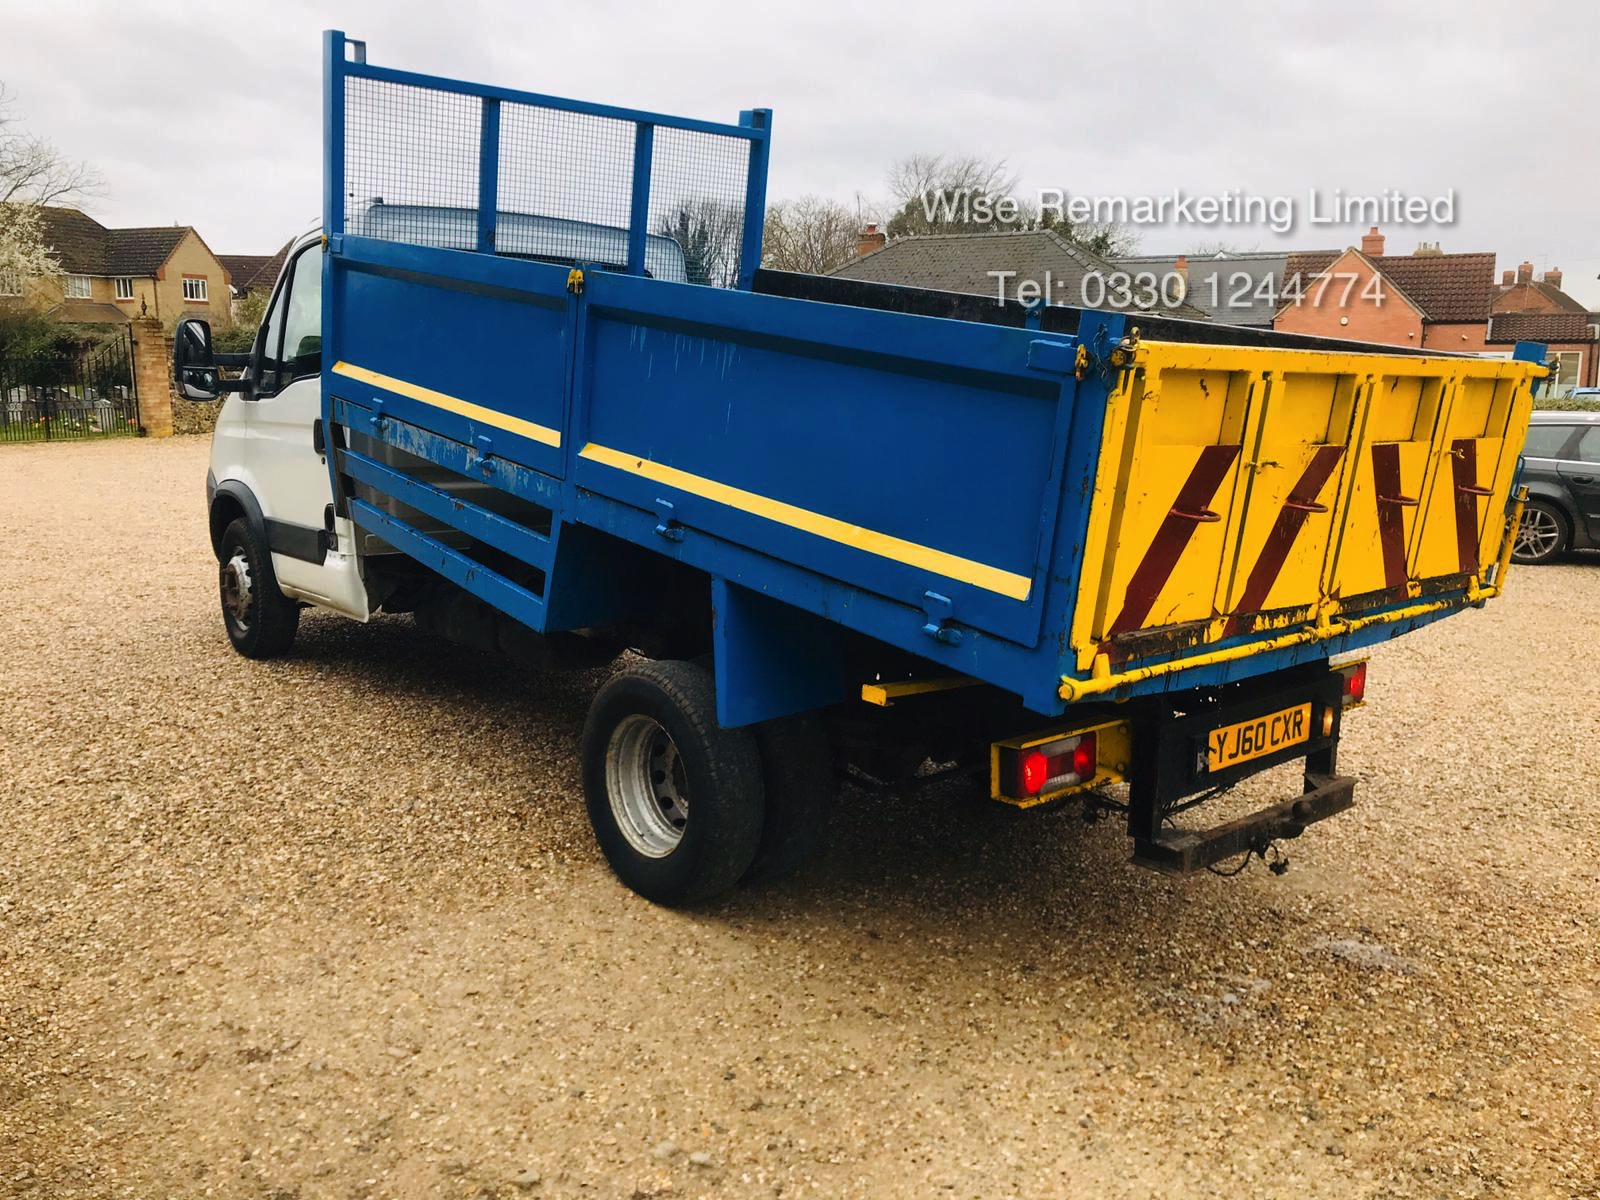 Iveco Daily 3.0 TD 60C18 Tipper (Twin Wheeler) - 6 Speed - 2011 Model - 1 Keeper SAVE 20% NO VAT - Image 5 of 18